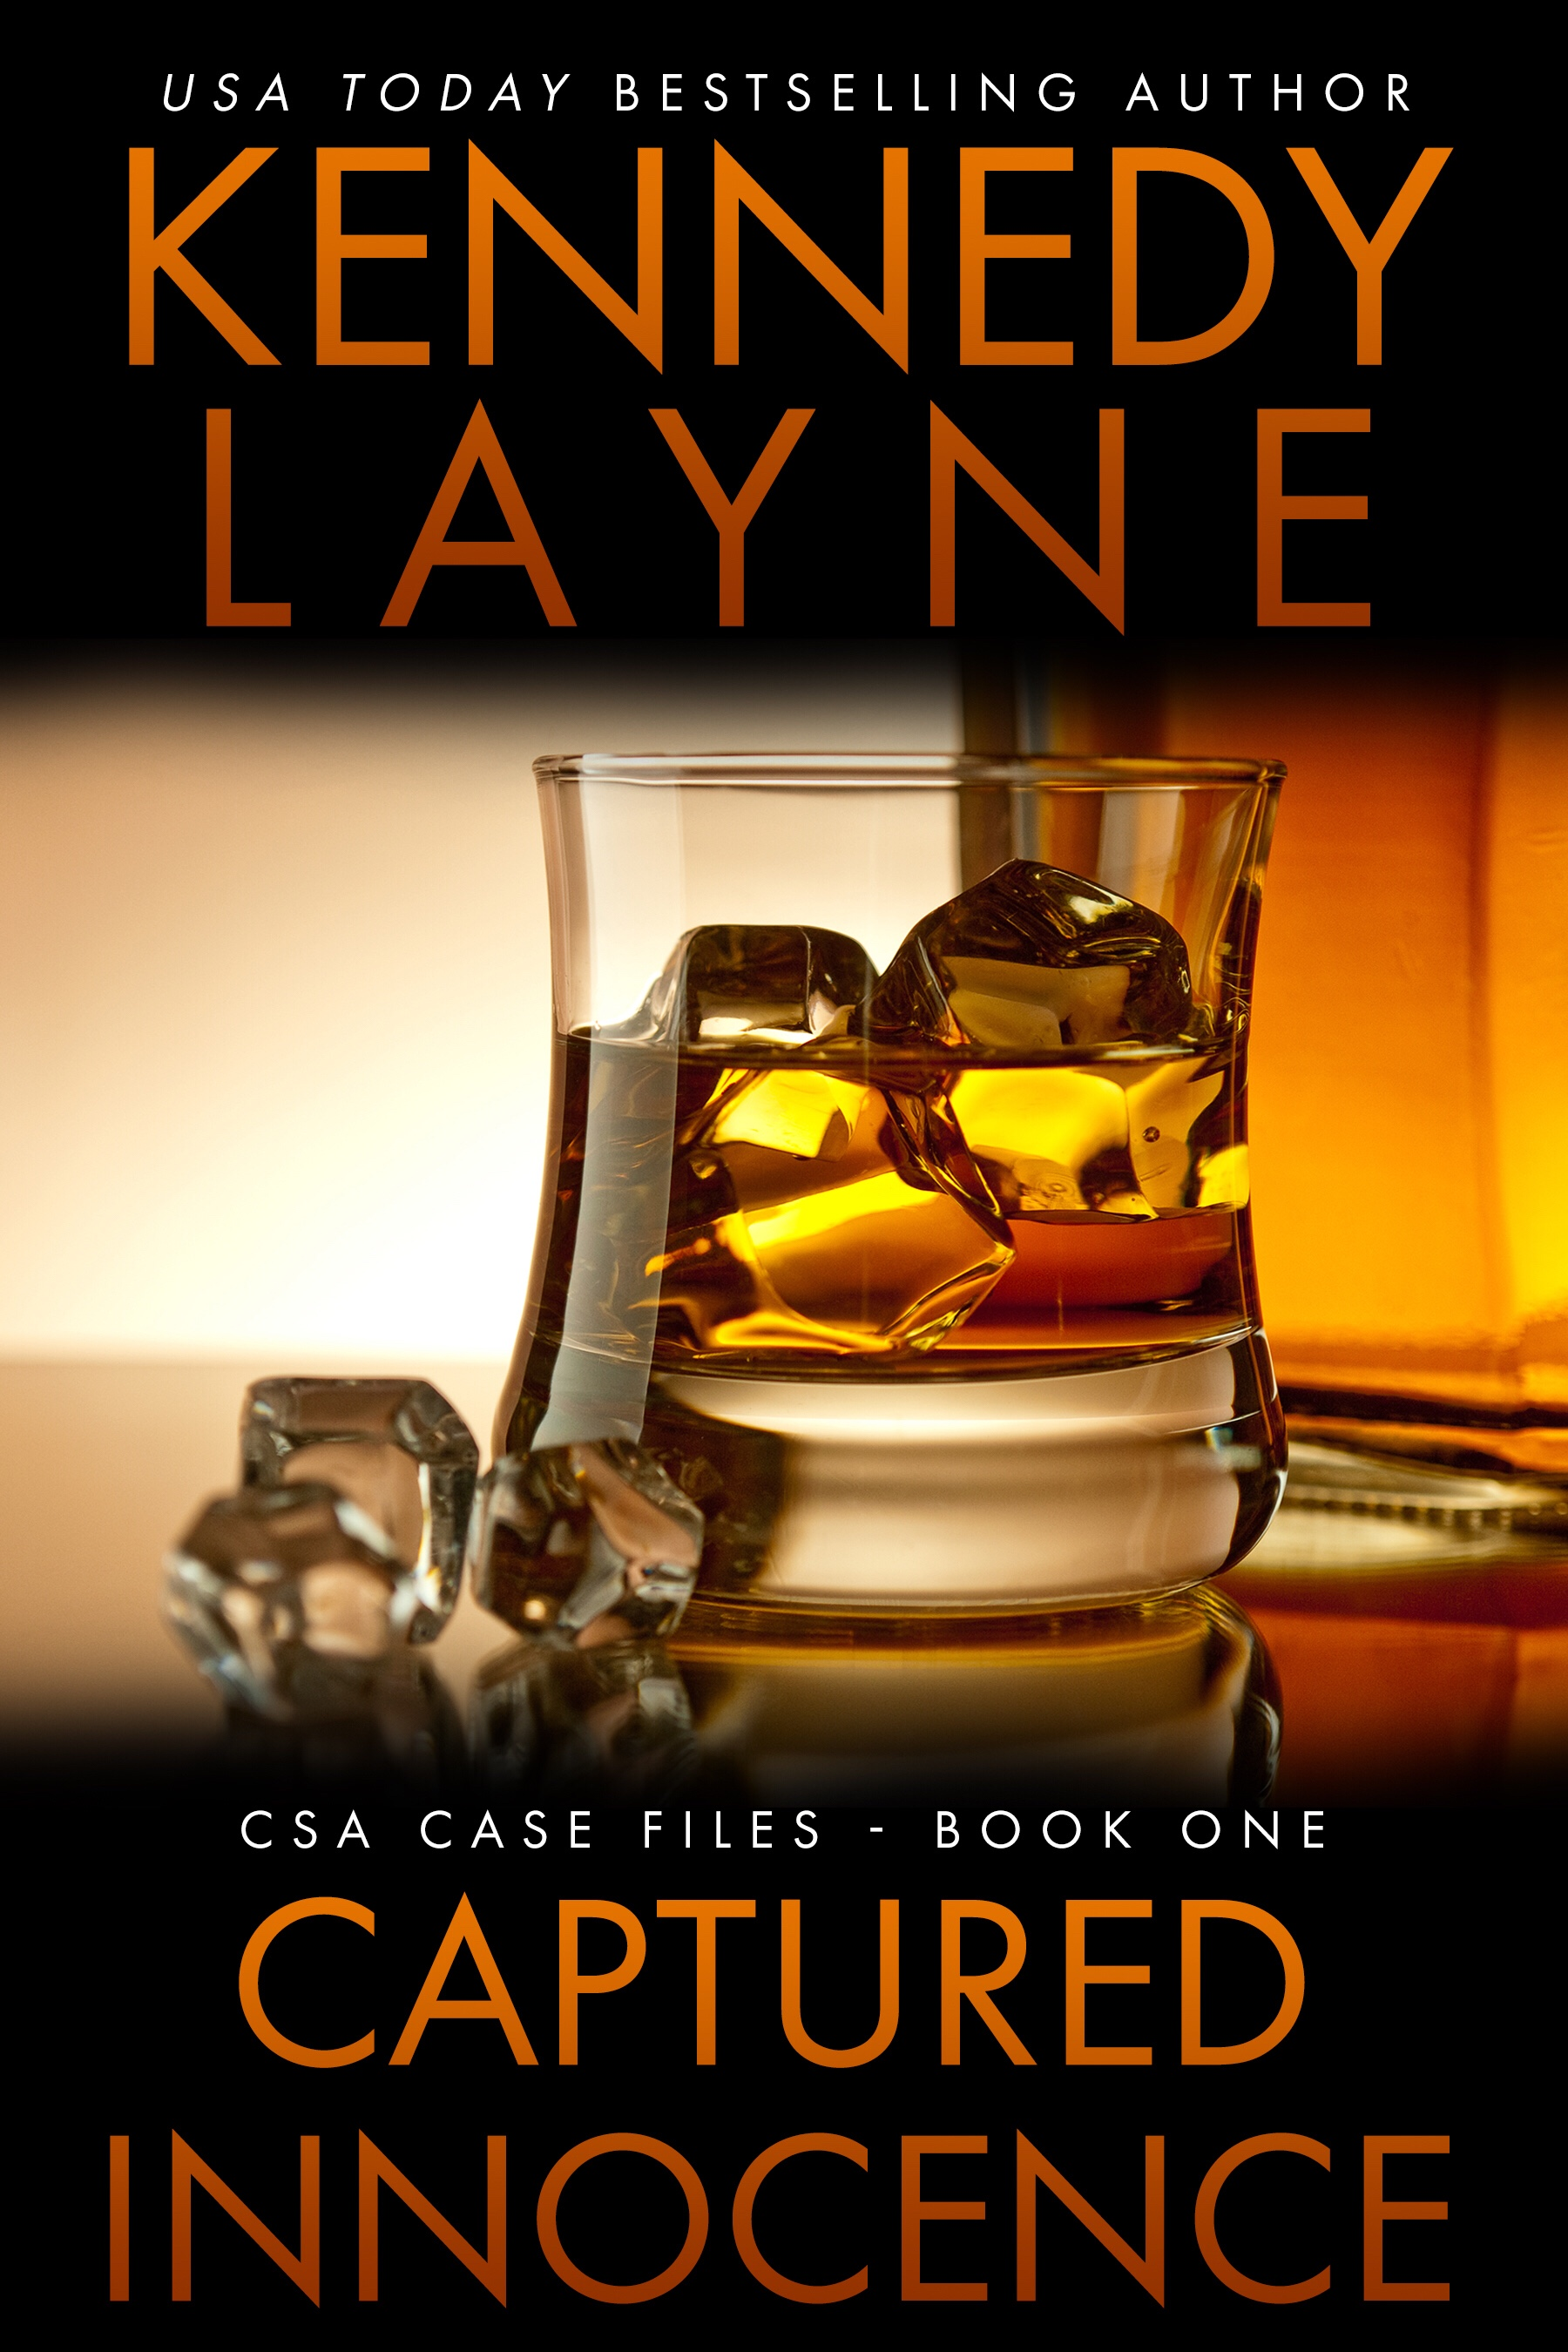 CSA CASE FILES SERIES by Kennedy Layne